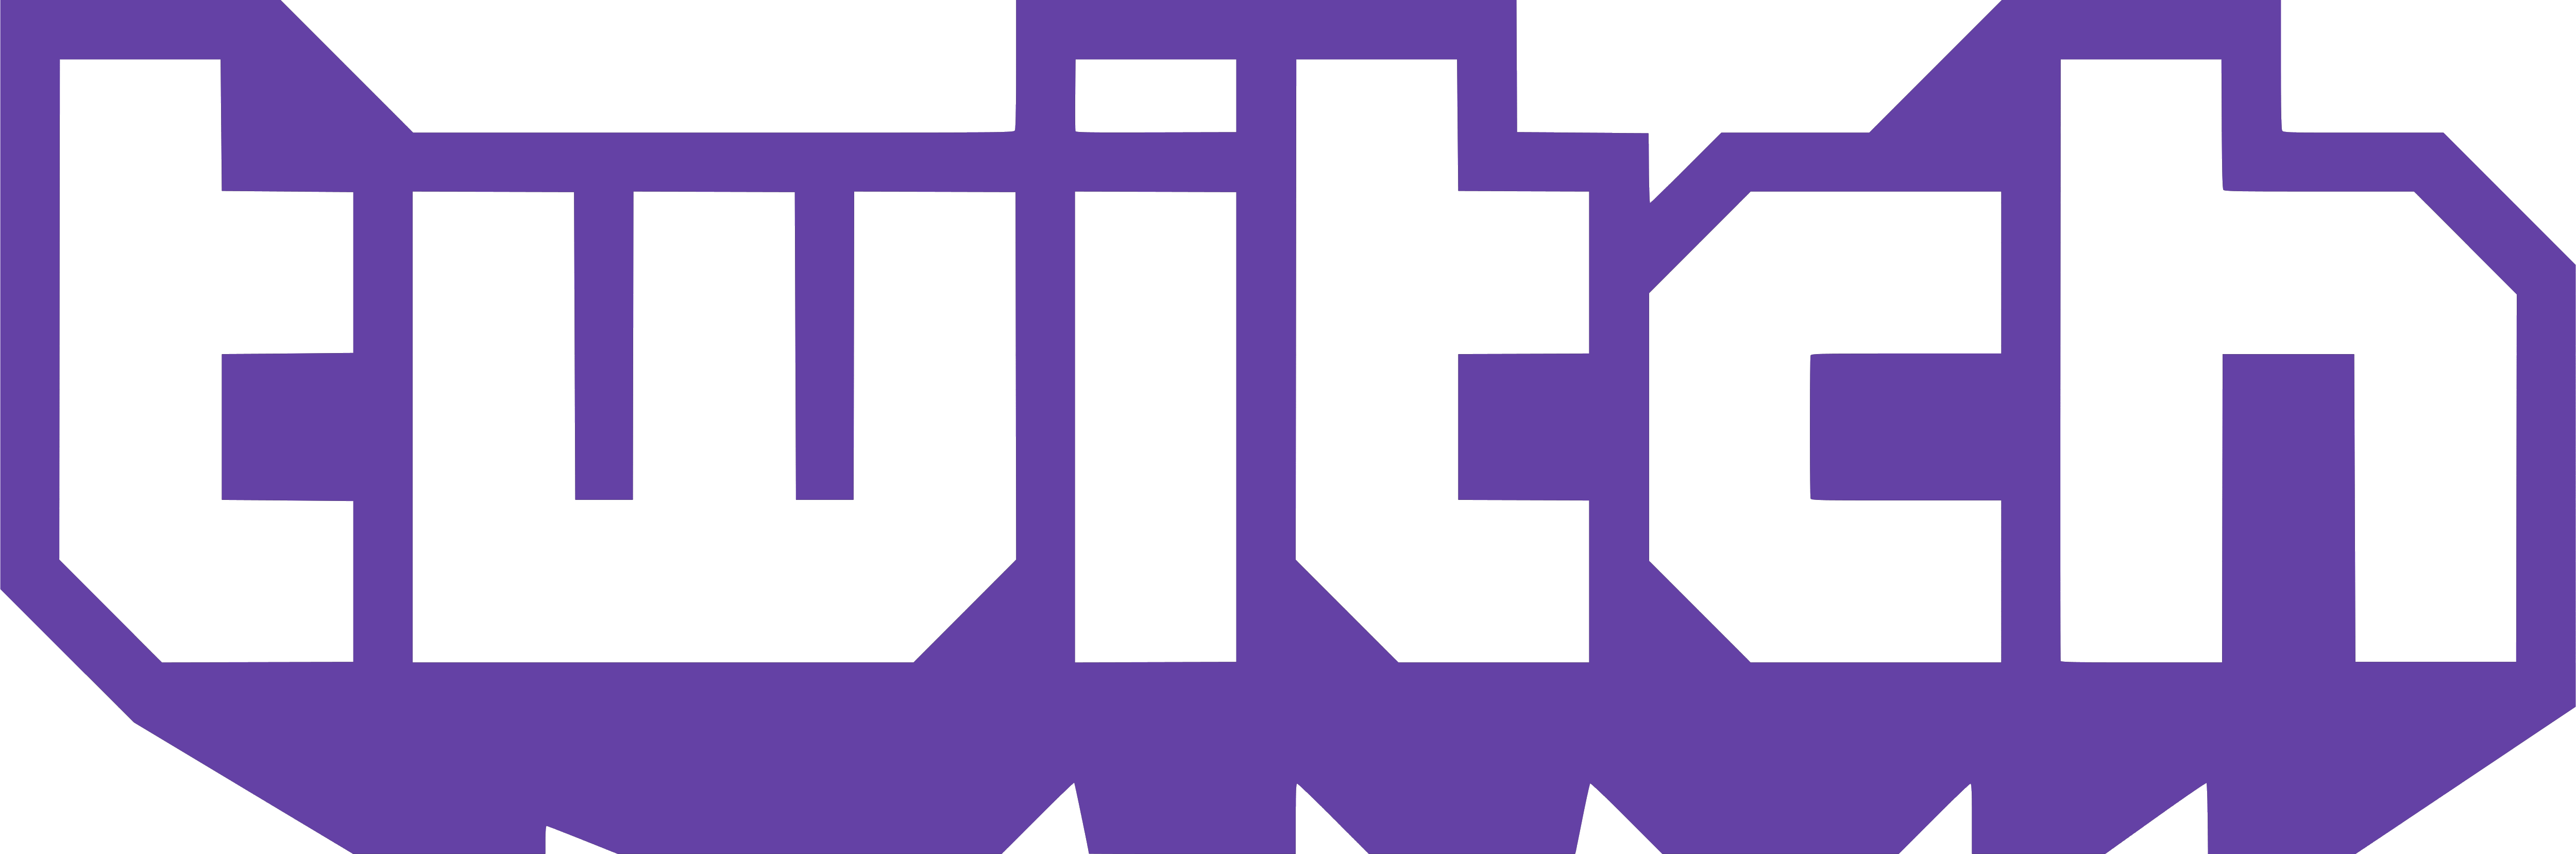 HD Logo Twitch PNG Transparent Image